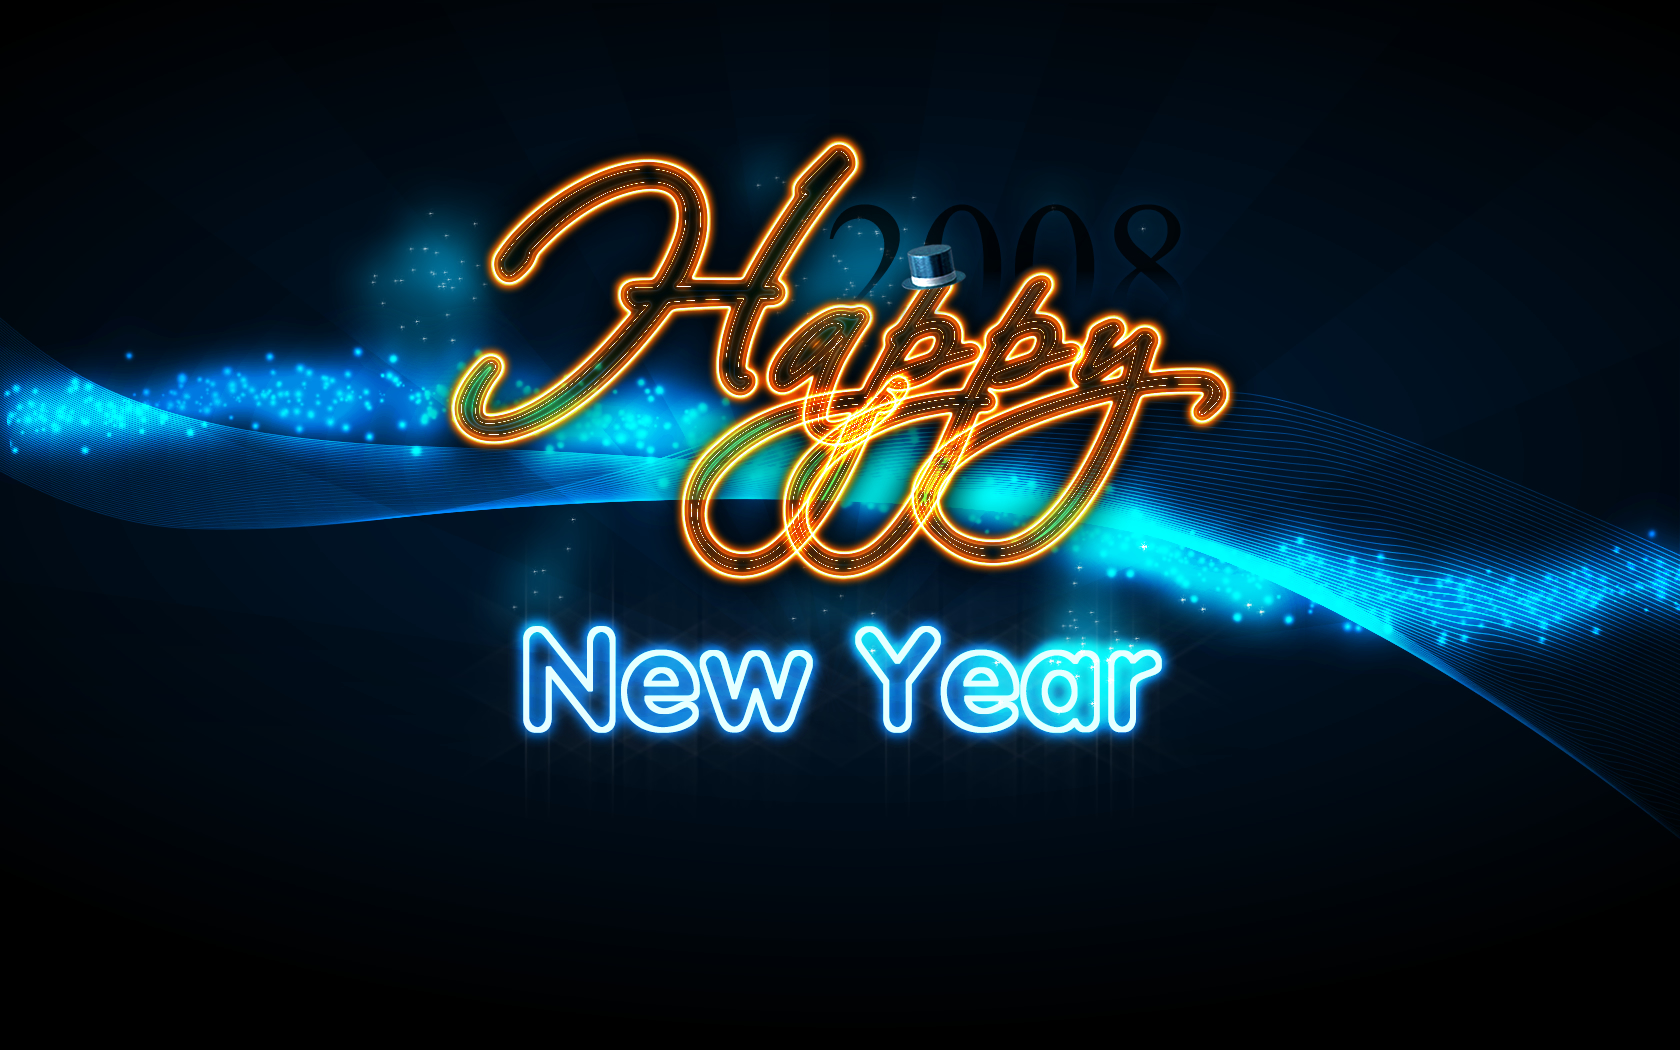 Free download new year wallpaper download 2015 Grasscloth